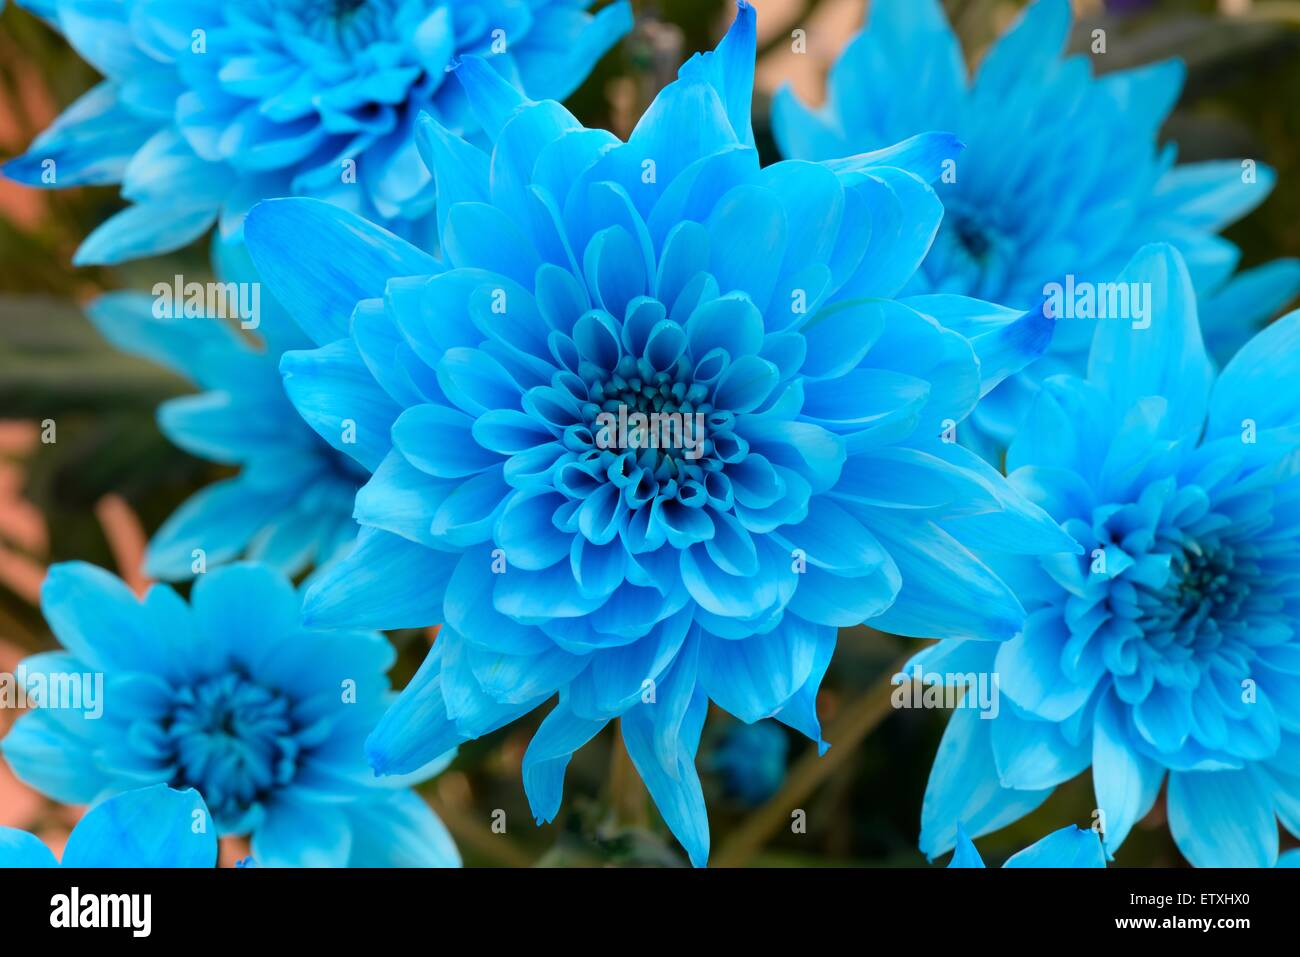 Blue dyed Chrysanthemum flowers Stock Photo, Royalty Free ...